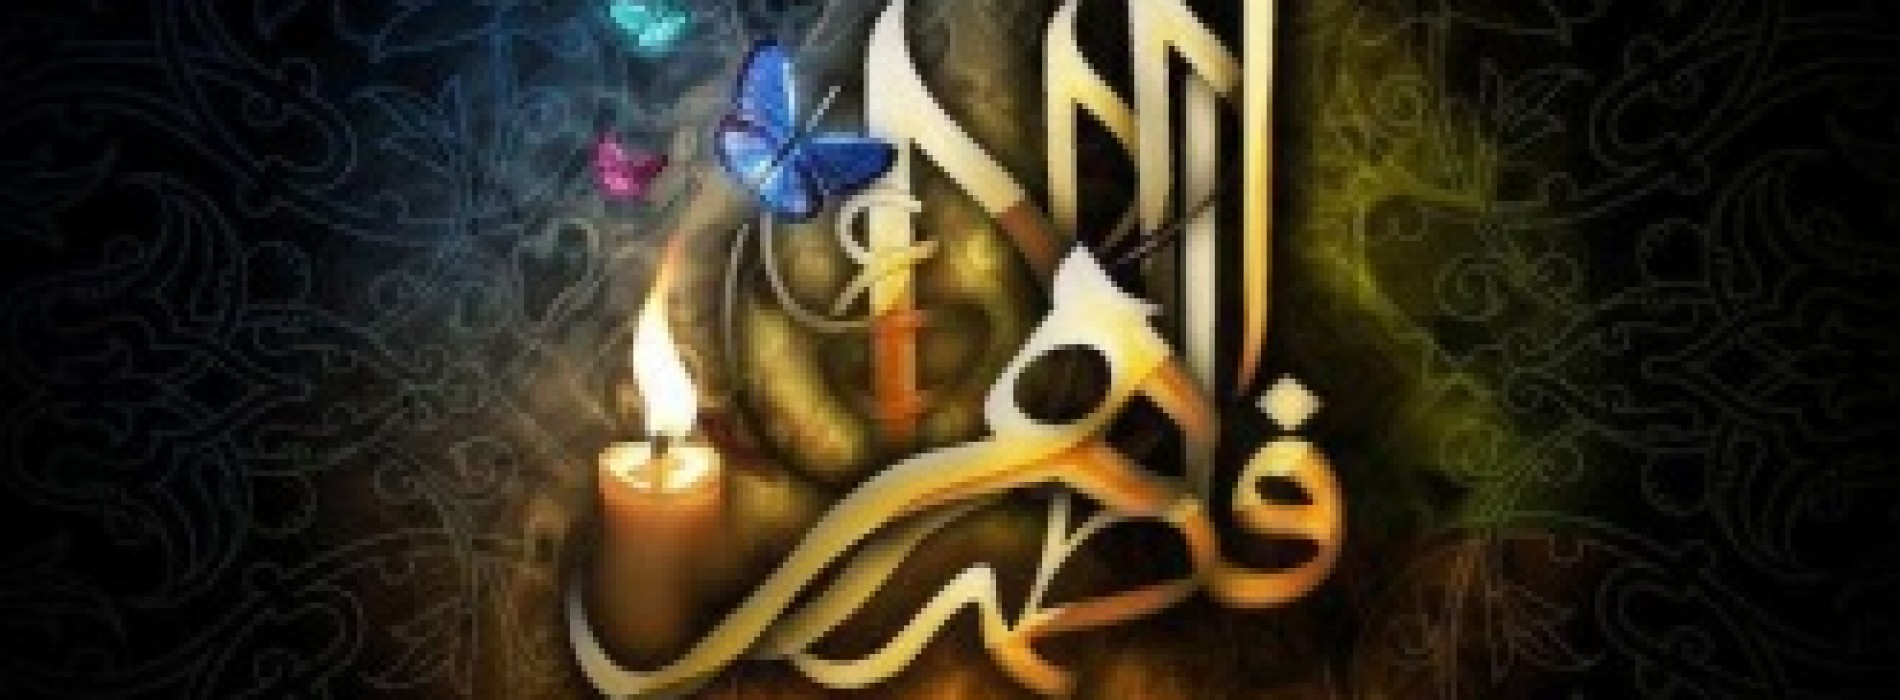 Lessons from the Will of Lady Fatima to Imam Ali